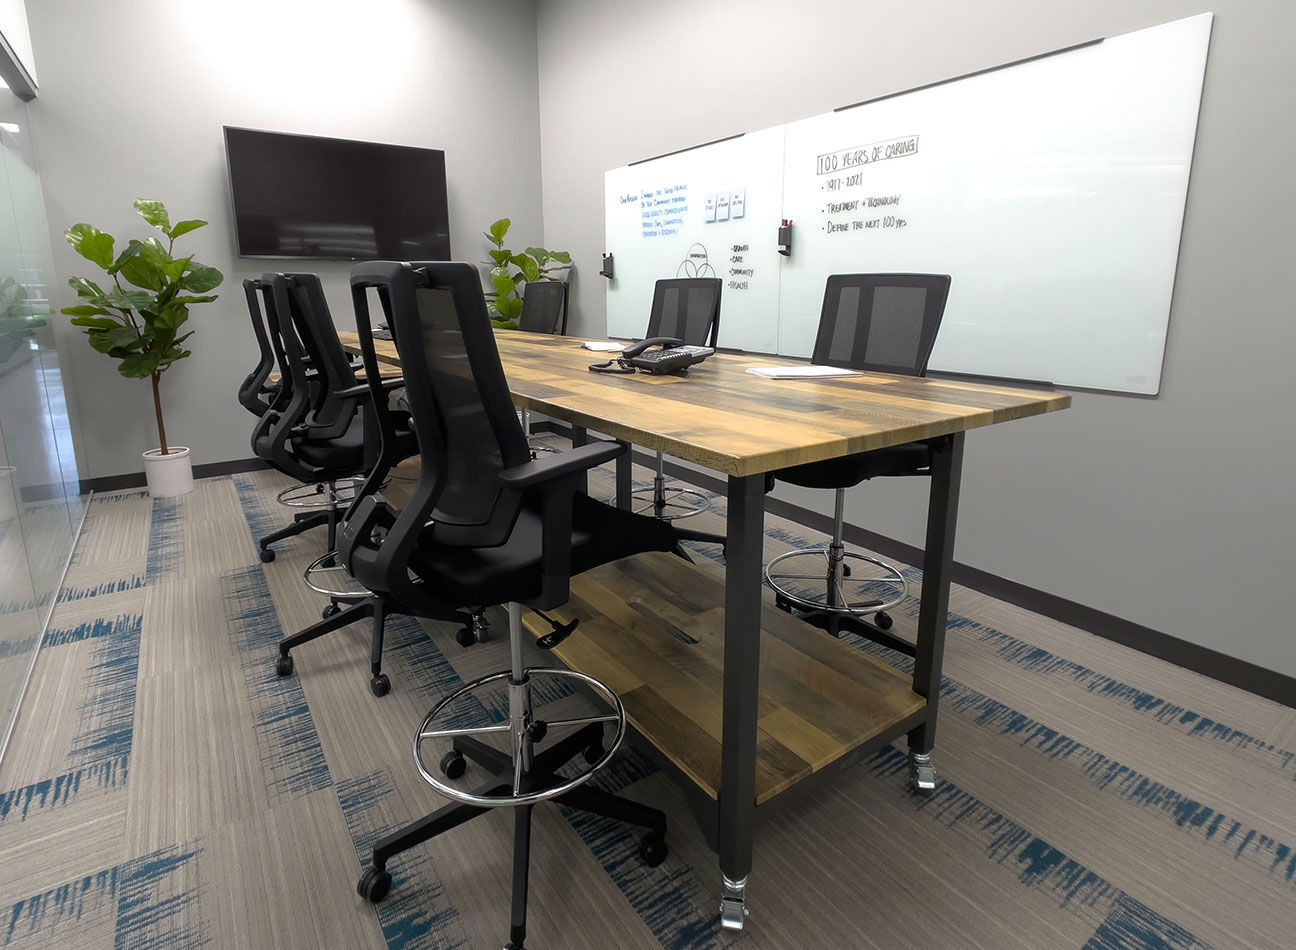 vari collaborative meeting furniture in the UHS office  image